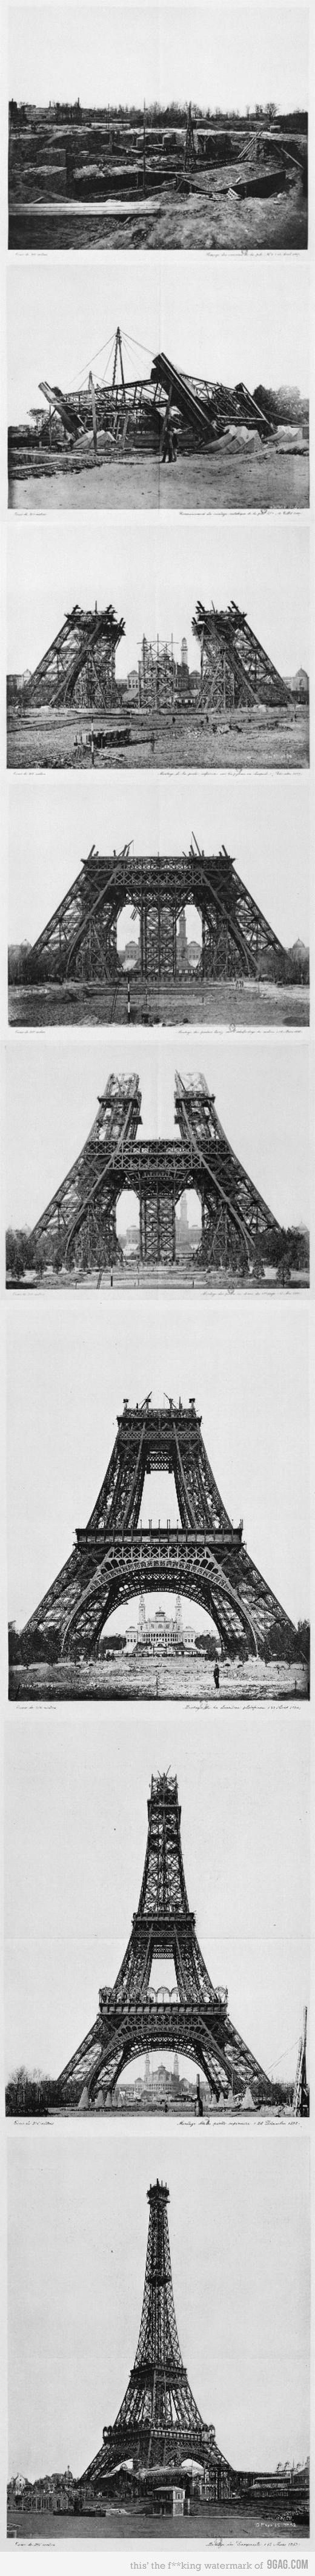 Construction of the Eiffel Tower | Rare Pictures